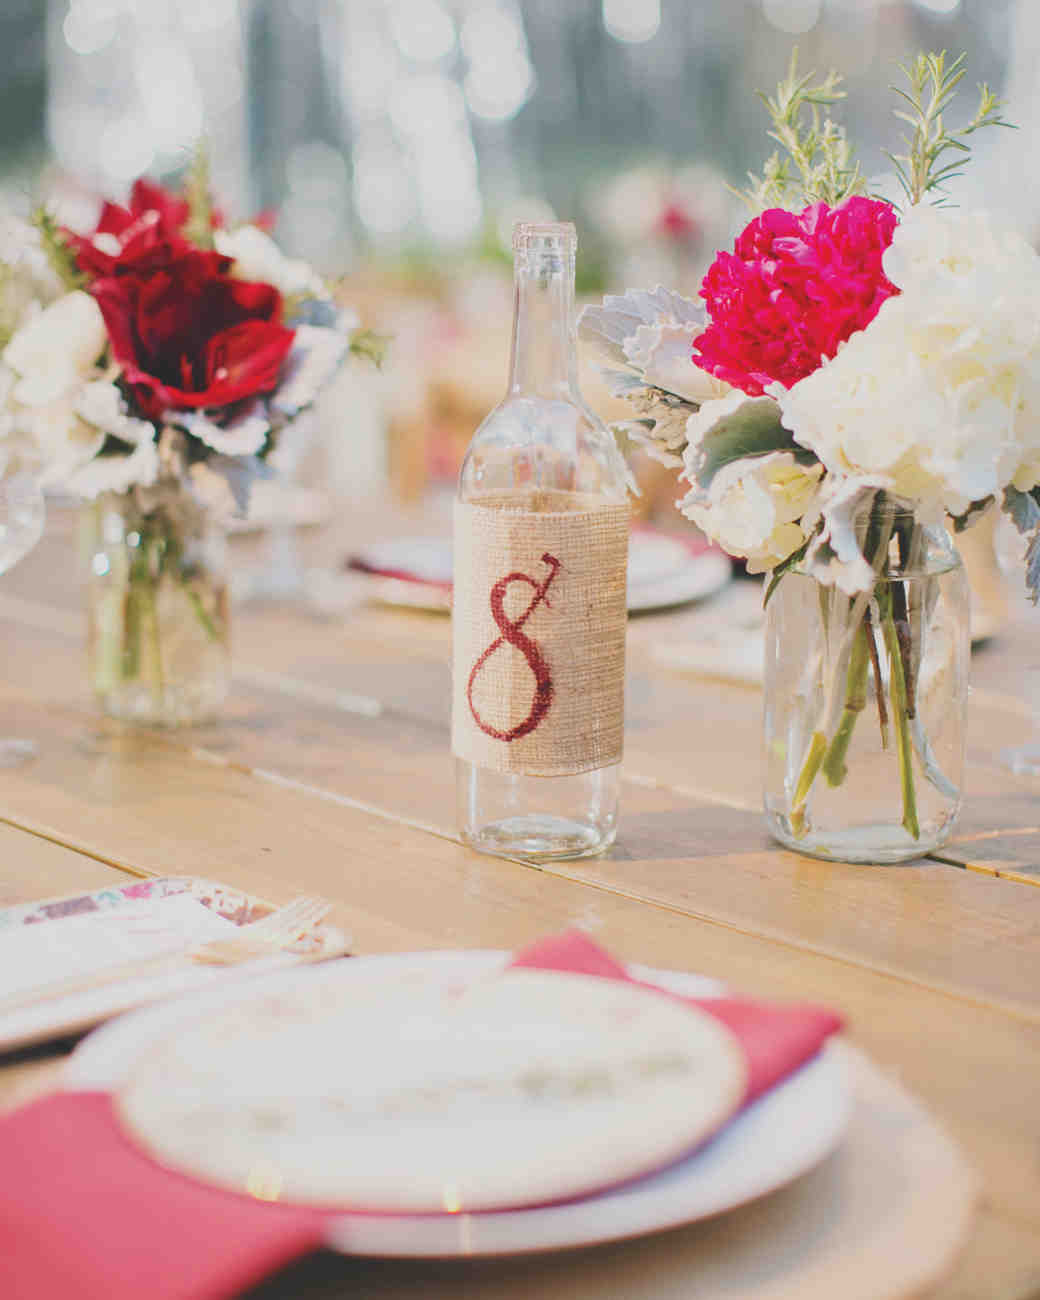 Uncategorized Table Number Ideas Wedding wedding table number ideas that scored at real celebrations martha stewart weddings